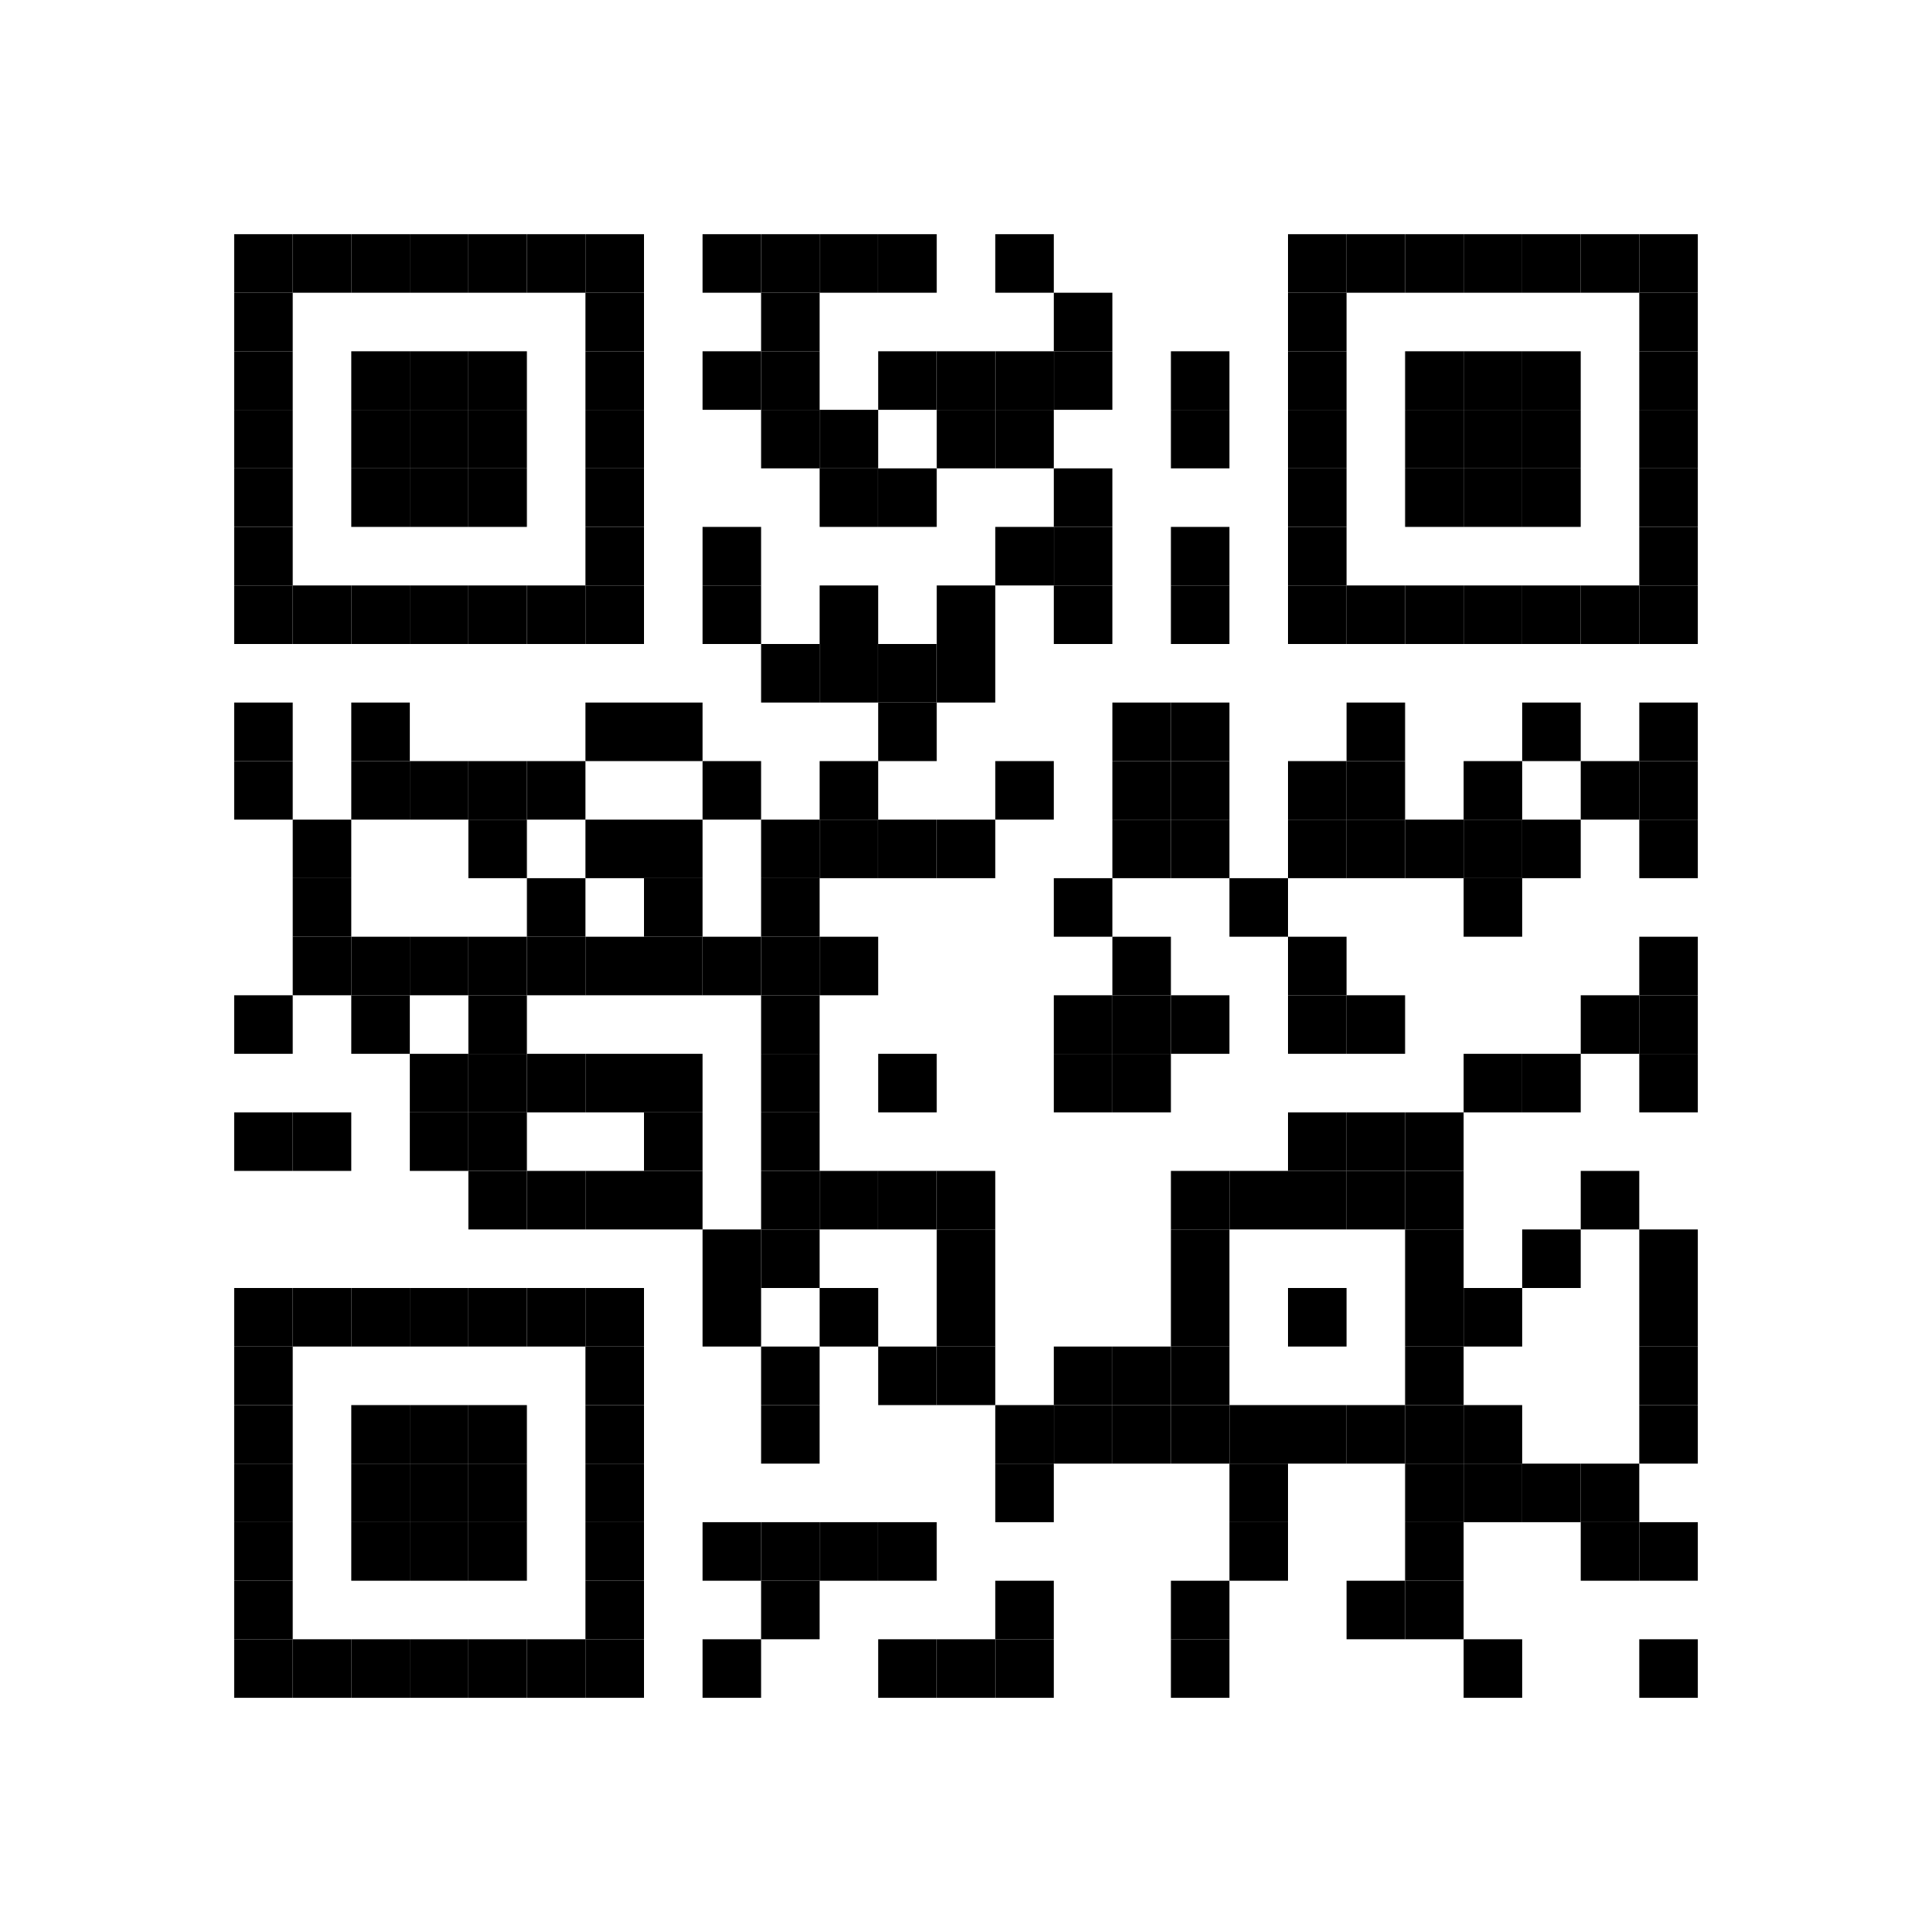 Share The Openclipart Qr Code By Openclipart